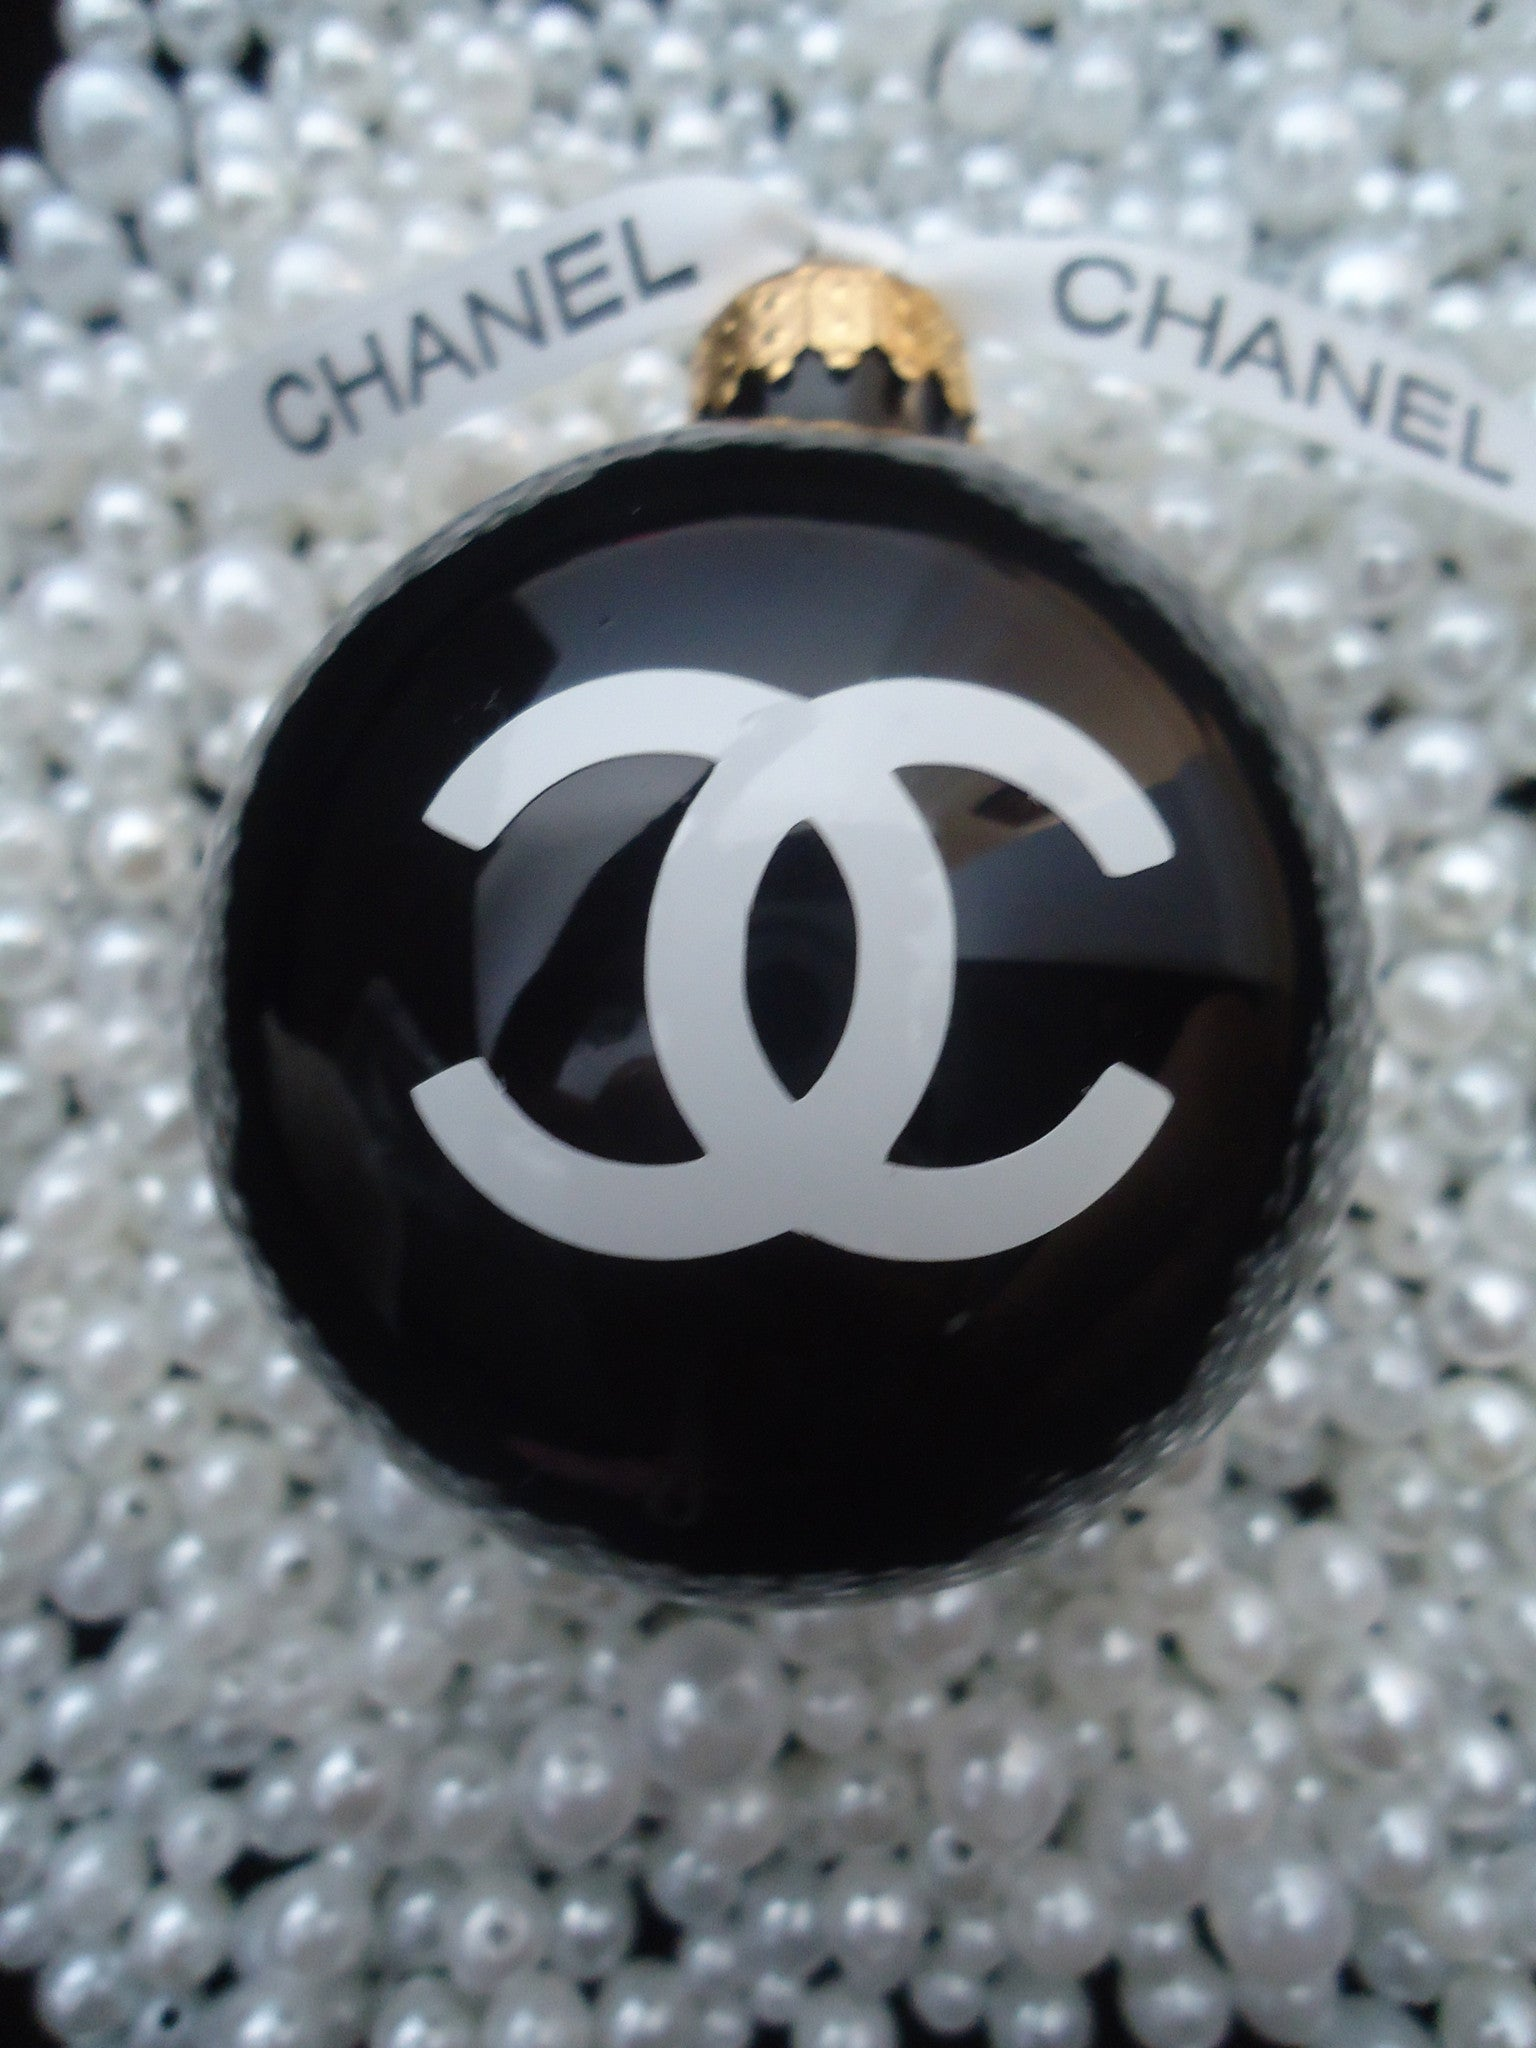 Chanel Christmas Ornaments.Chanel Inspired Shiny Black Glass Christmas Tree Ornament Large 3 Classy Gift